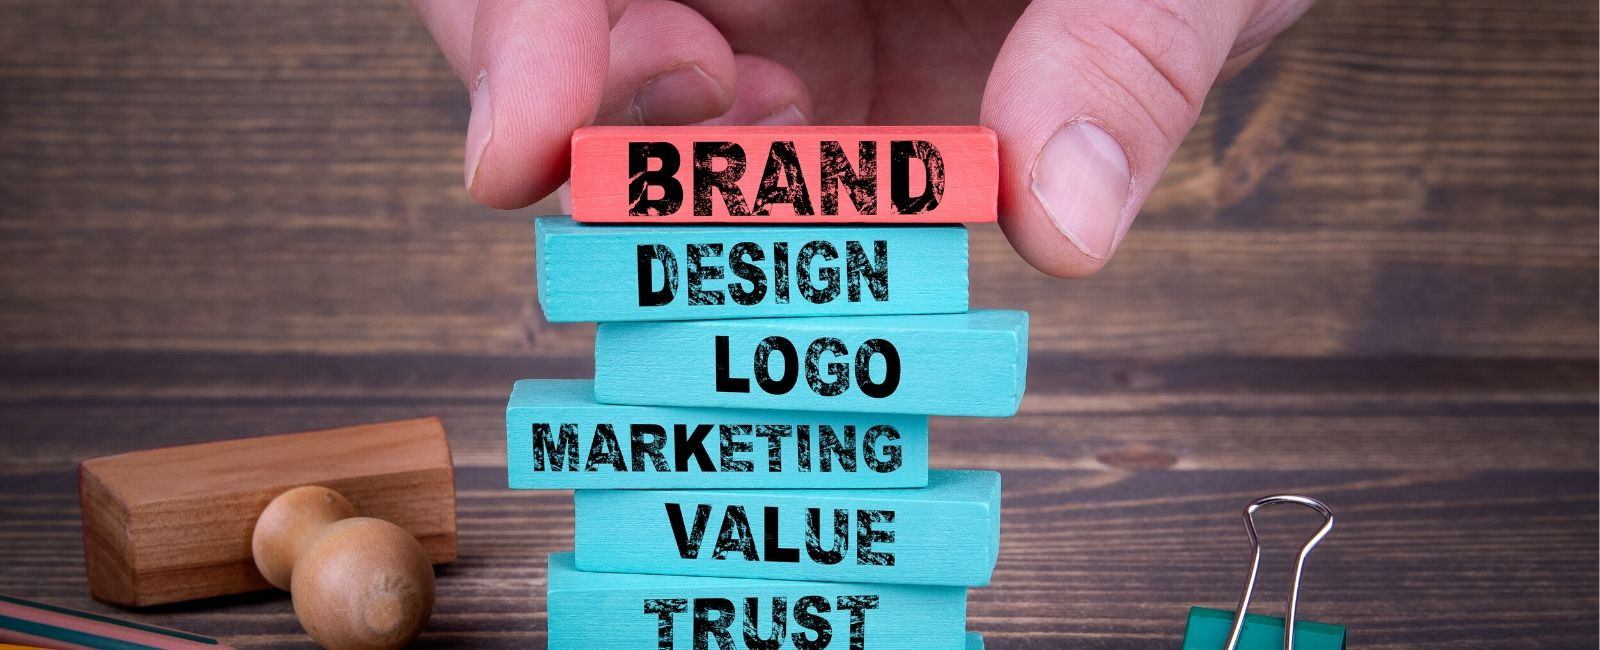 Image showing some elements of branding